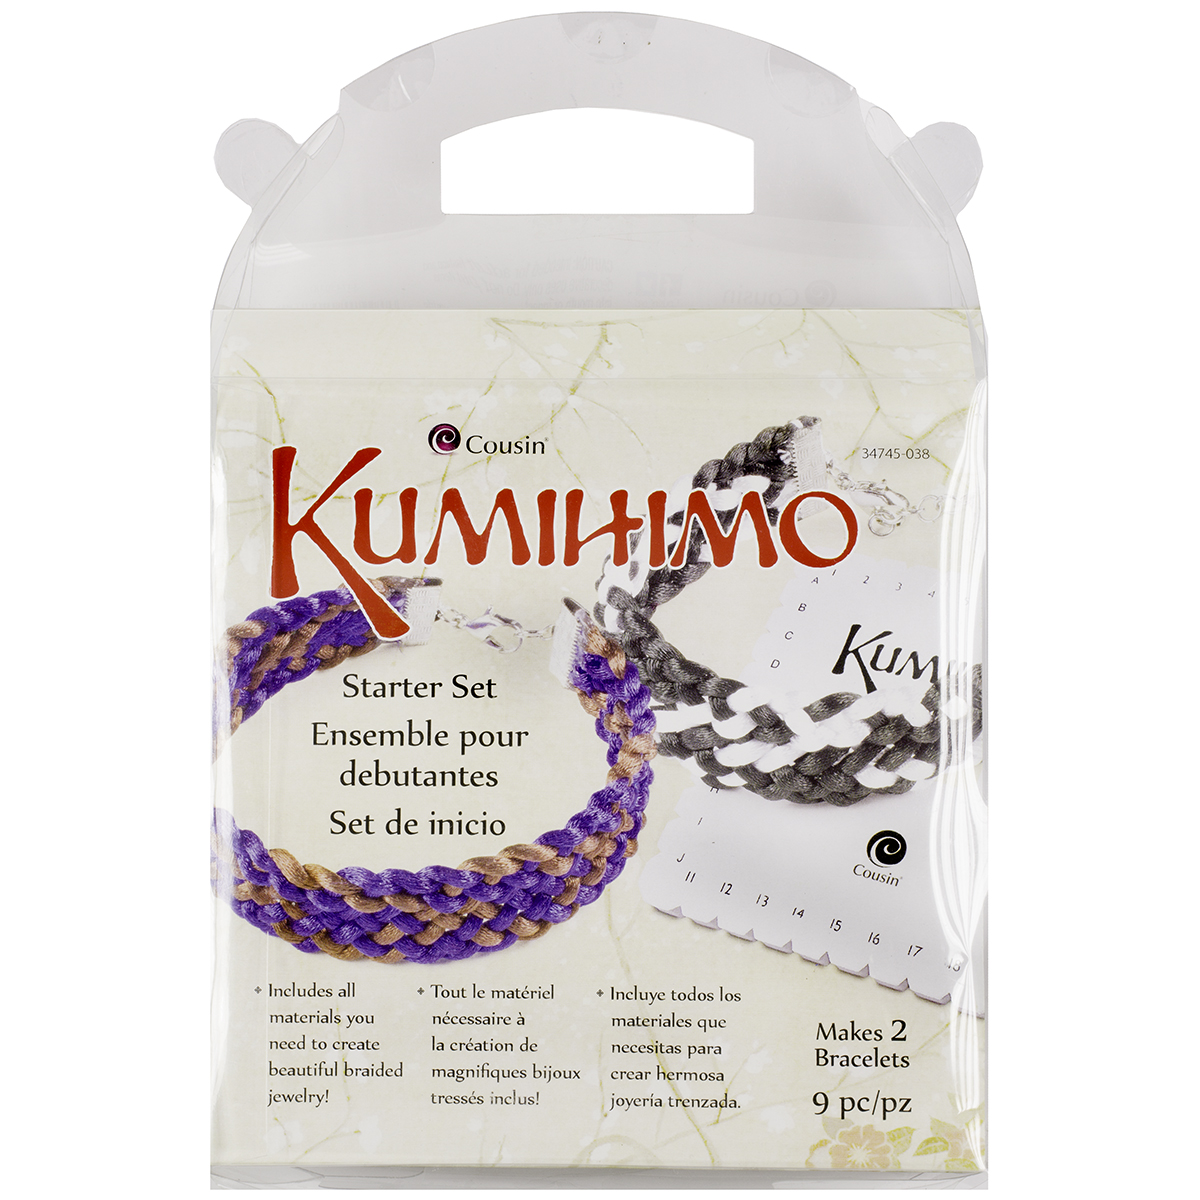 Kumihimo Starter Set, Square 9pcs